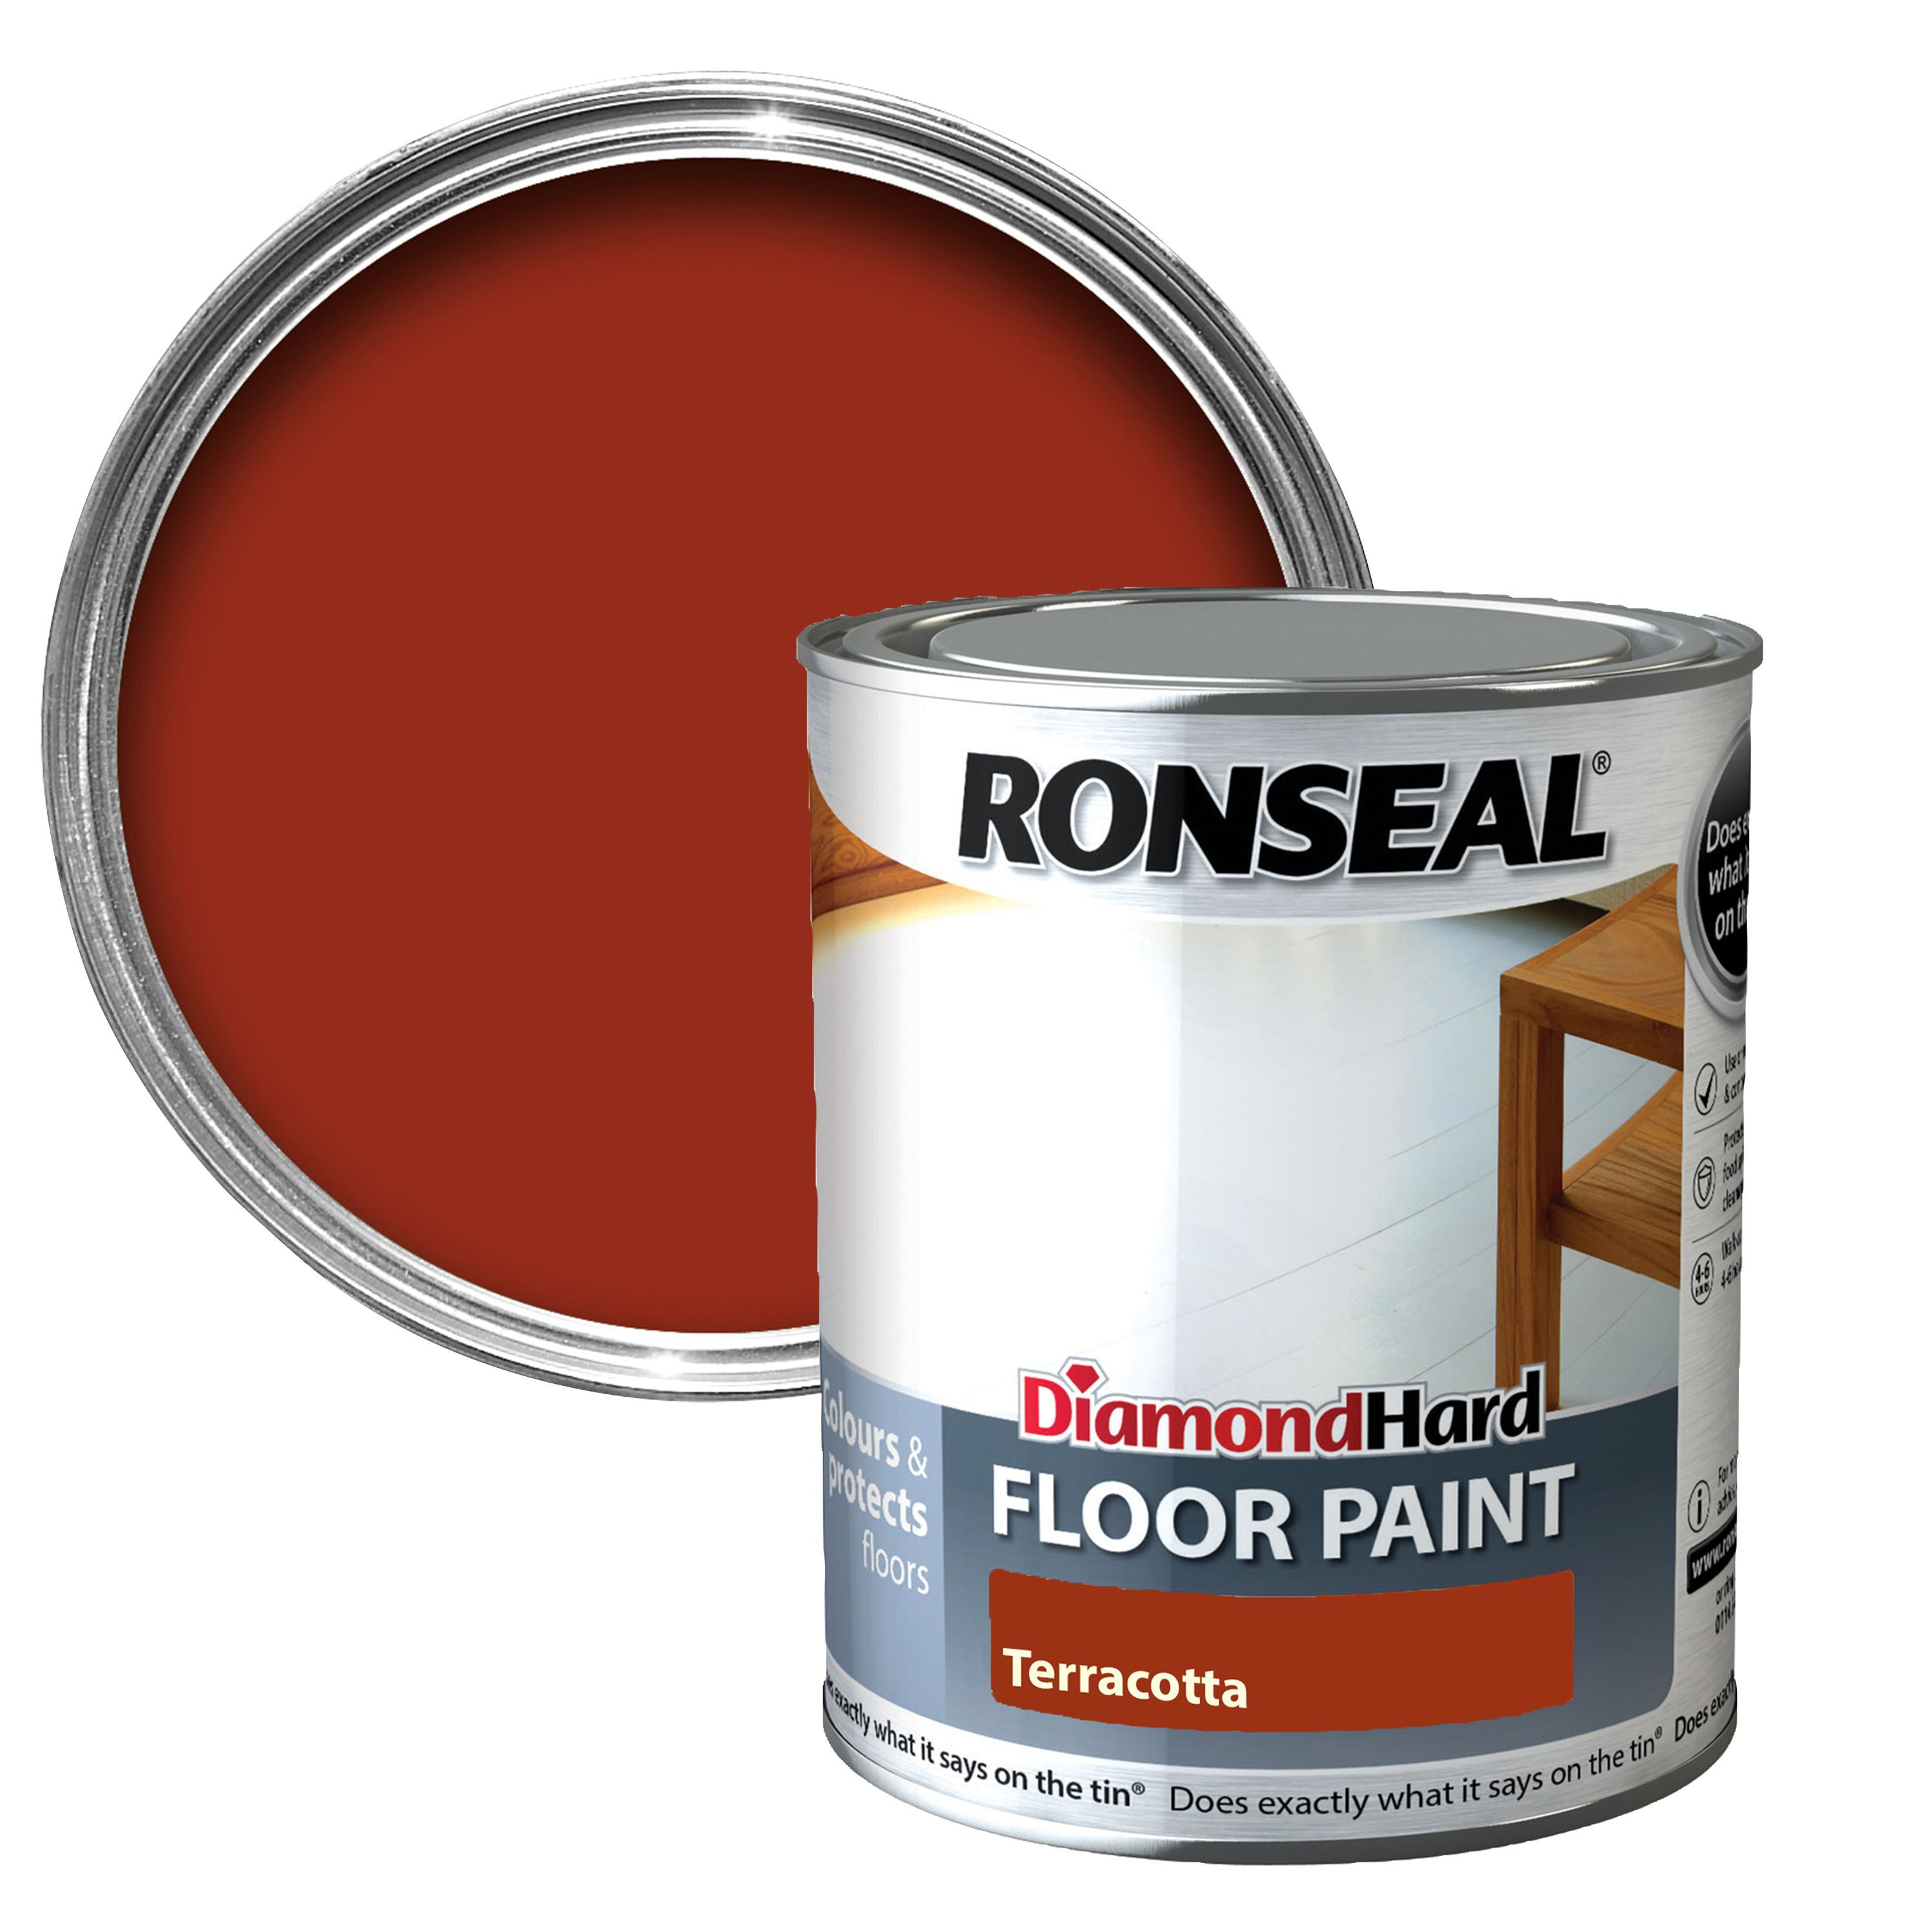 Ronseal Diamond Terracotta Satin Floor Paint0 75l Departments Diy At B Q - Home Depot Garden Furniture Clearance